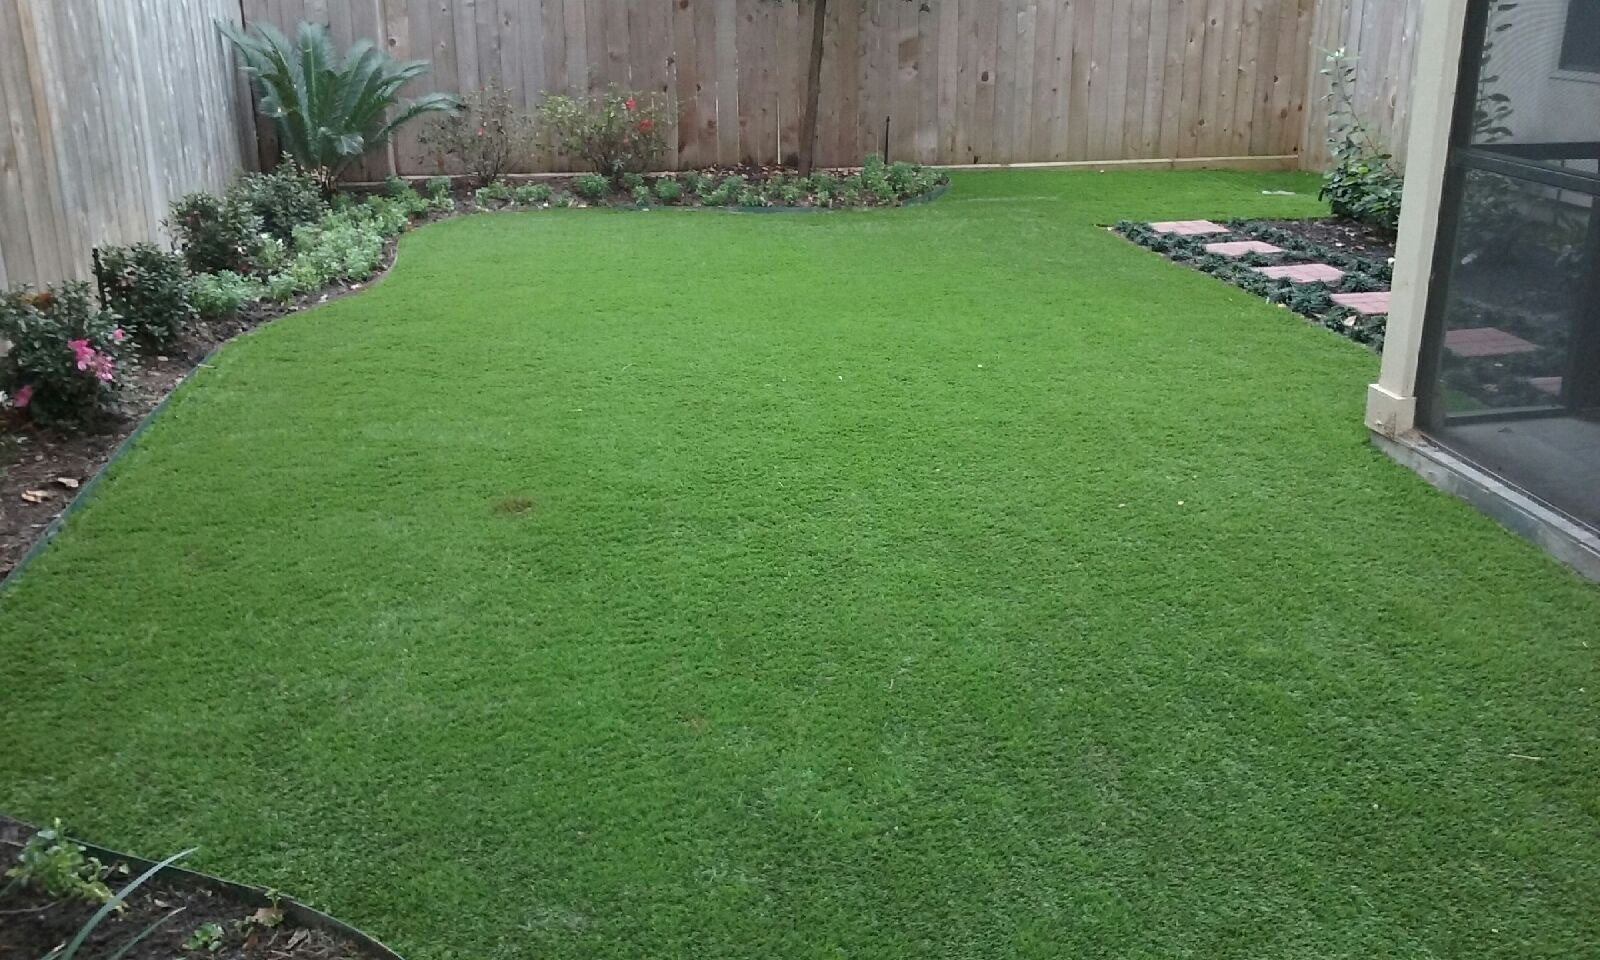 SyntheticTurf3